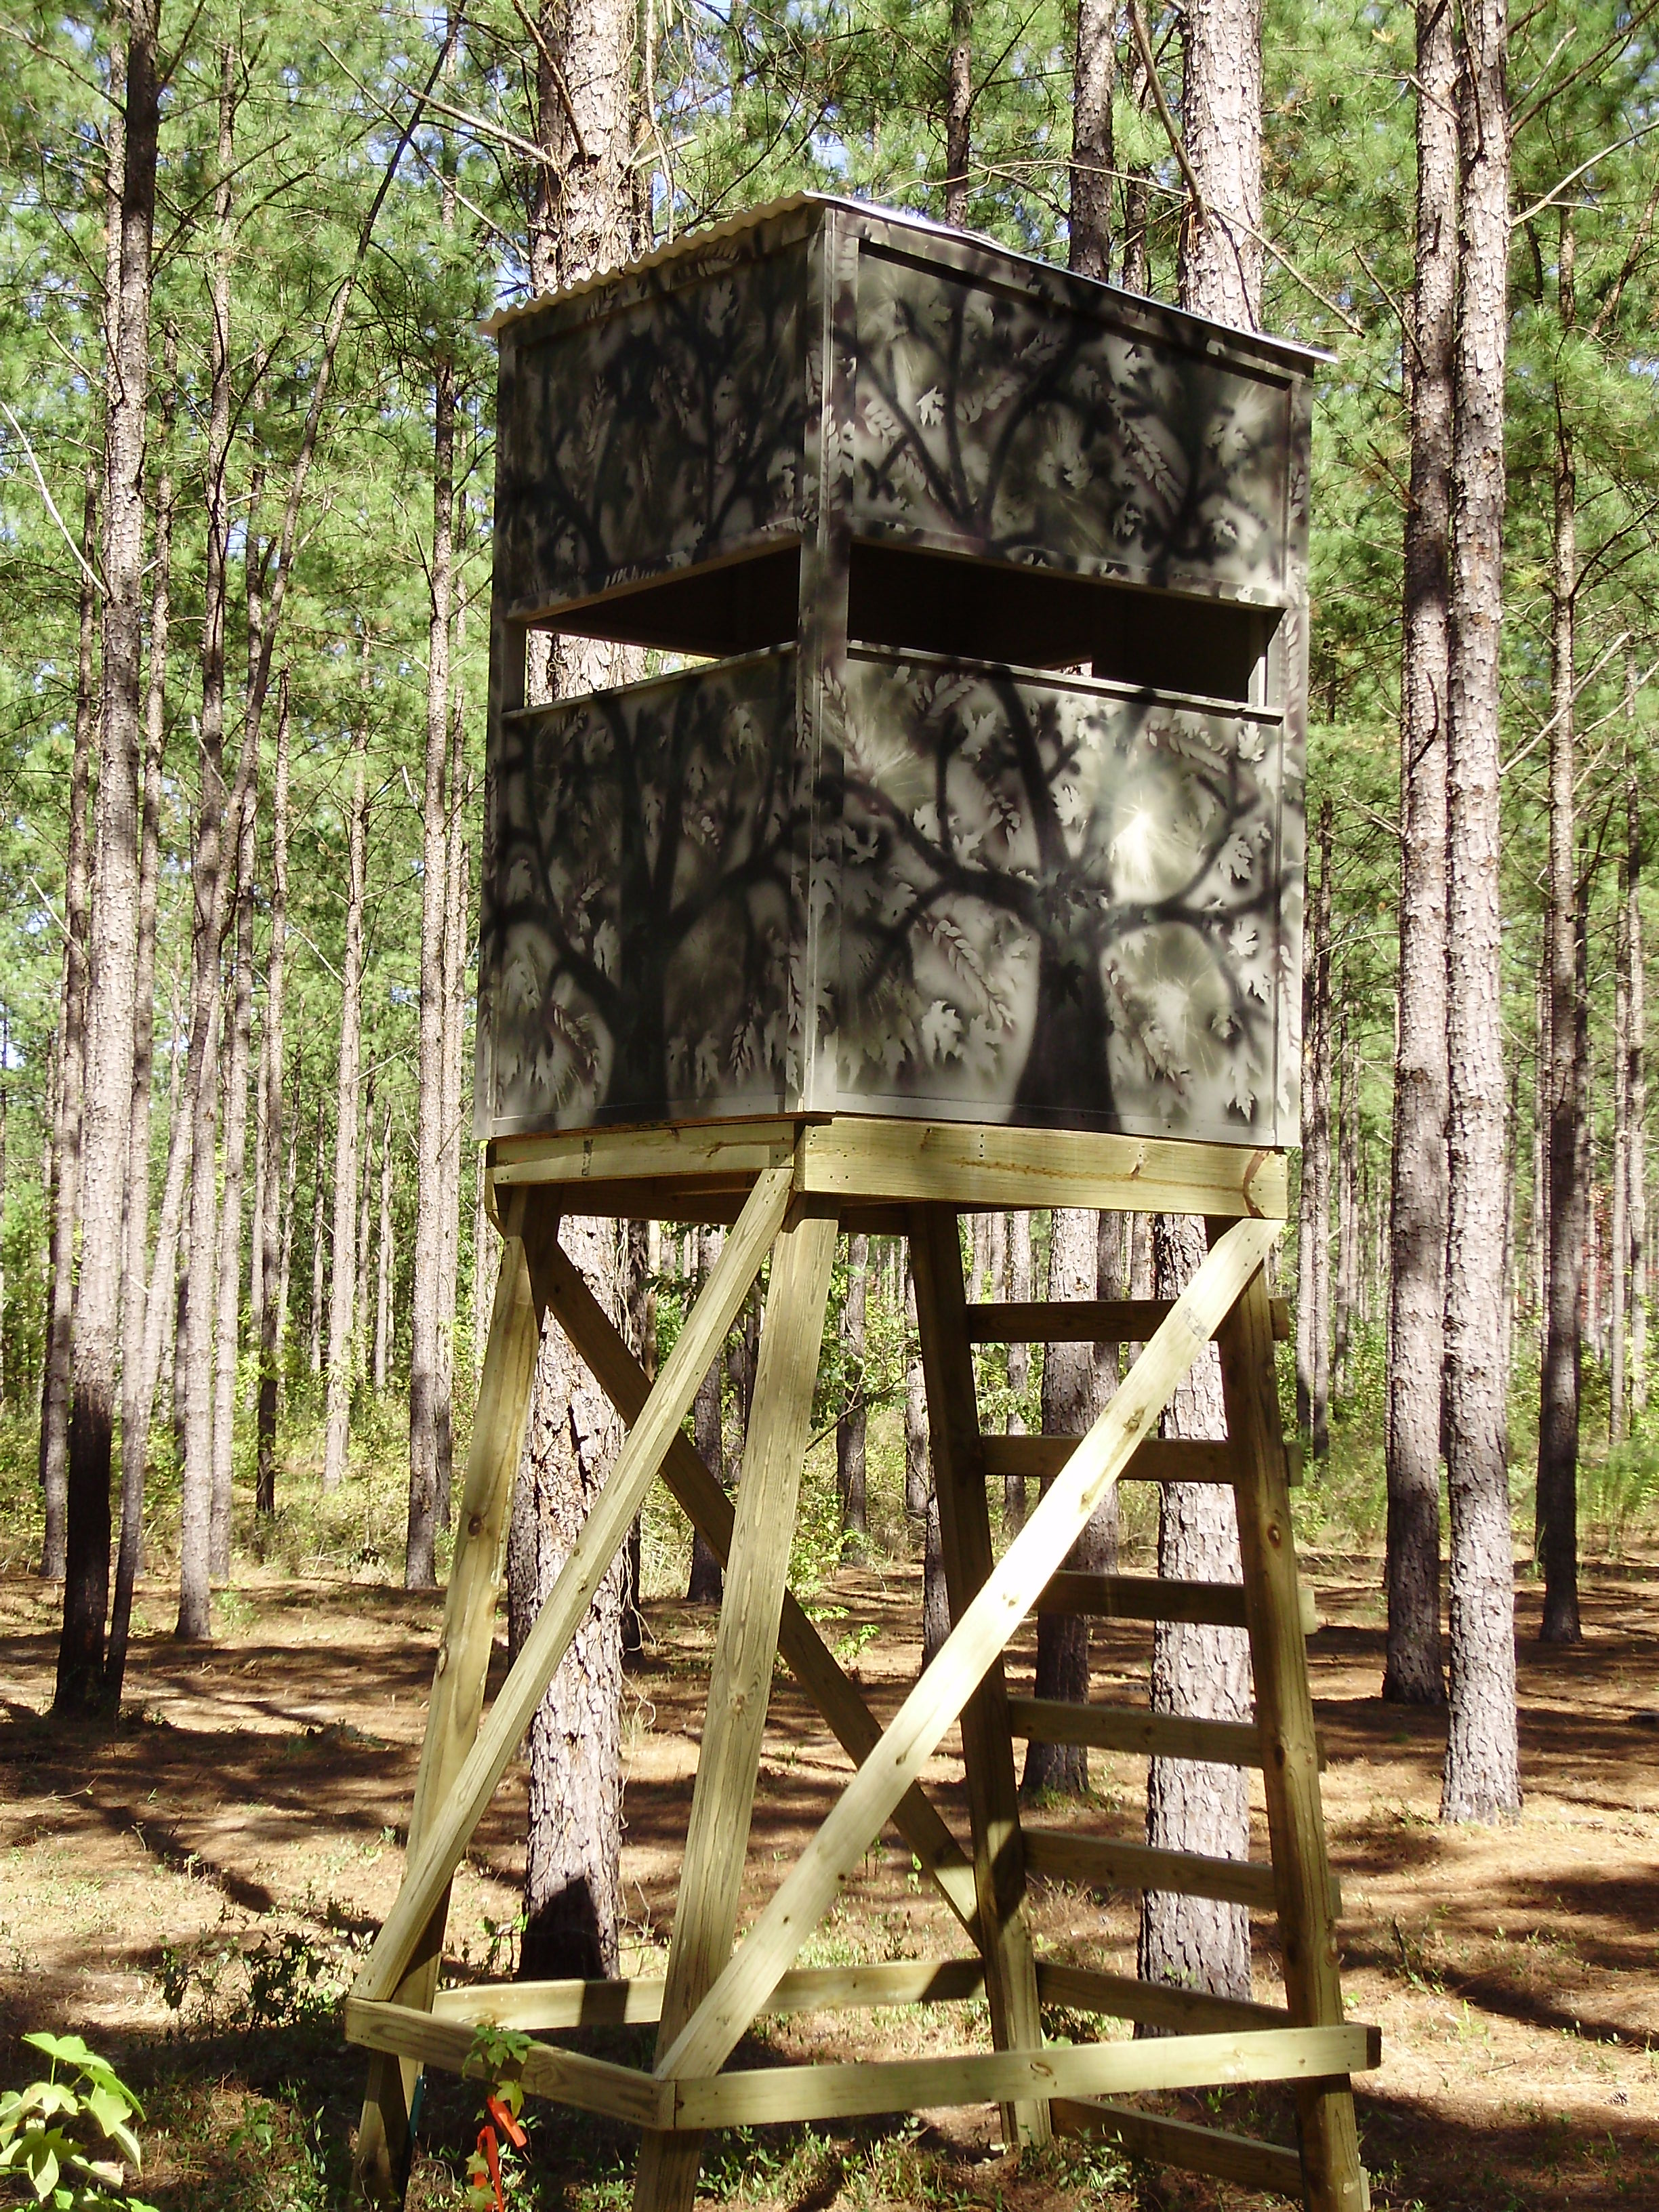 Build your own pizza oven nz free woodworking plans for Deer stand made from pallets